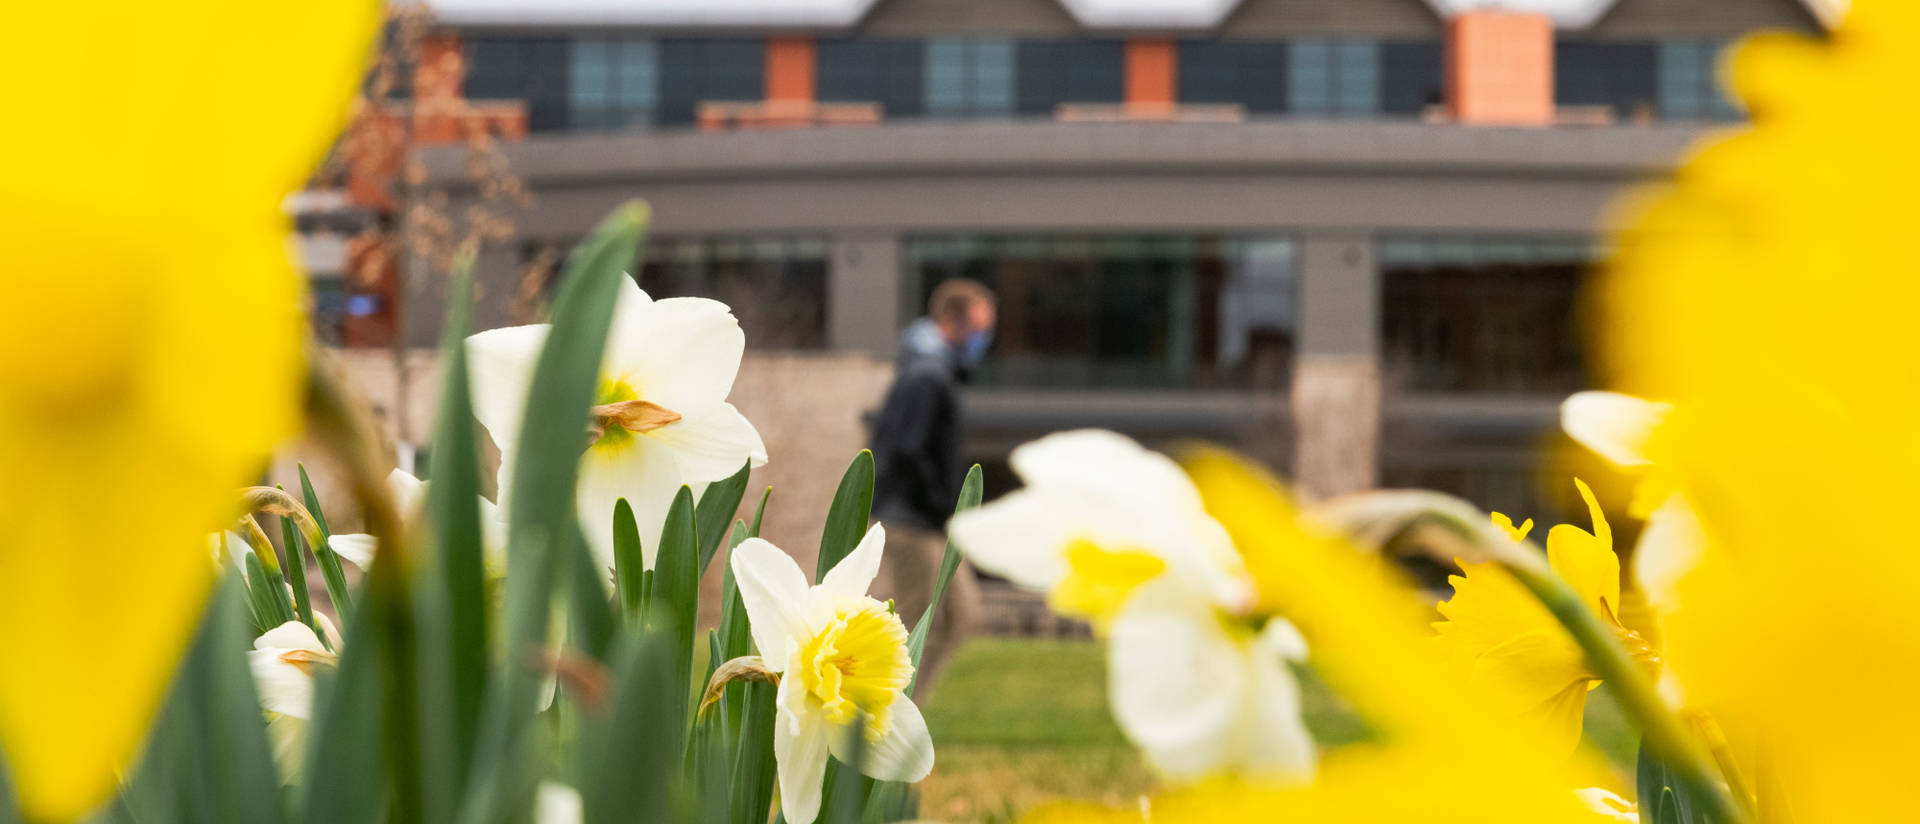 Daffodils with Davies Center in background